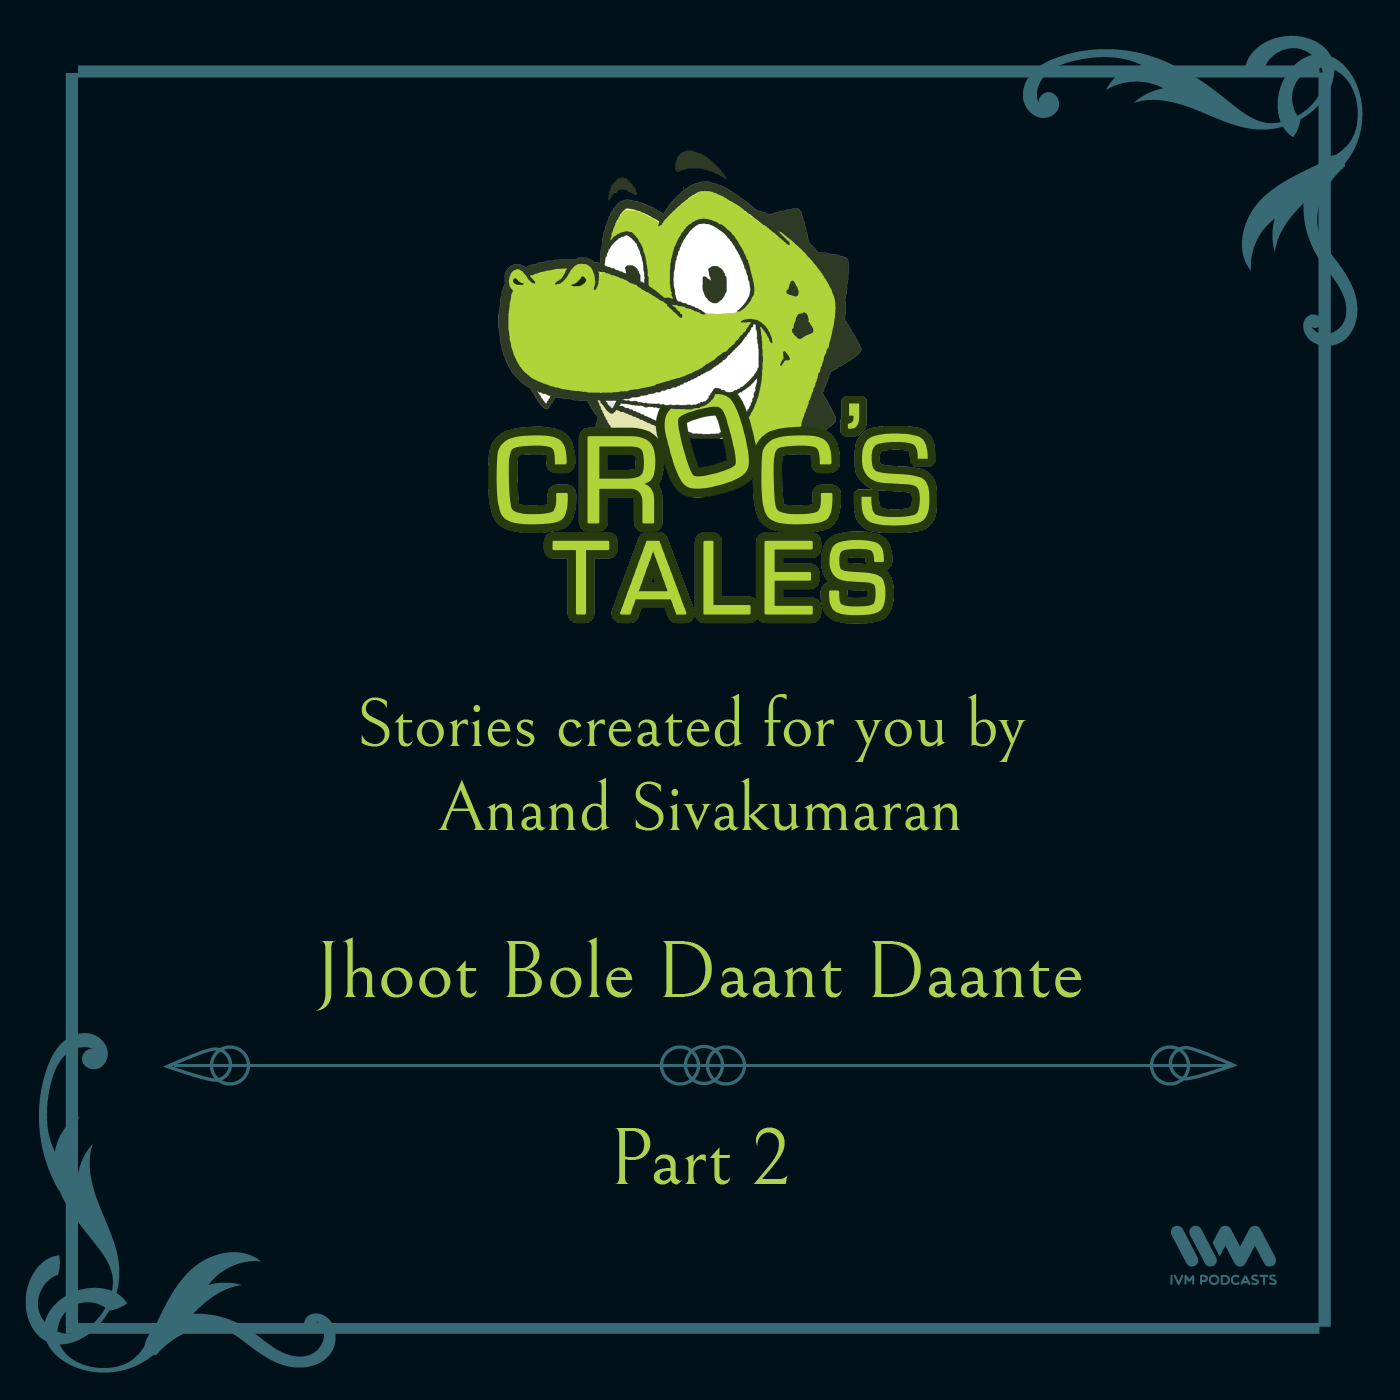 Ep. 87: Jhoot Bole Daant Daante (Part 2)